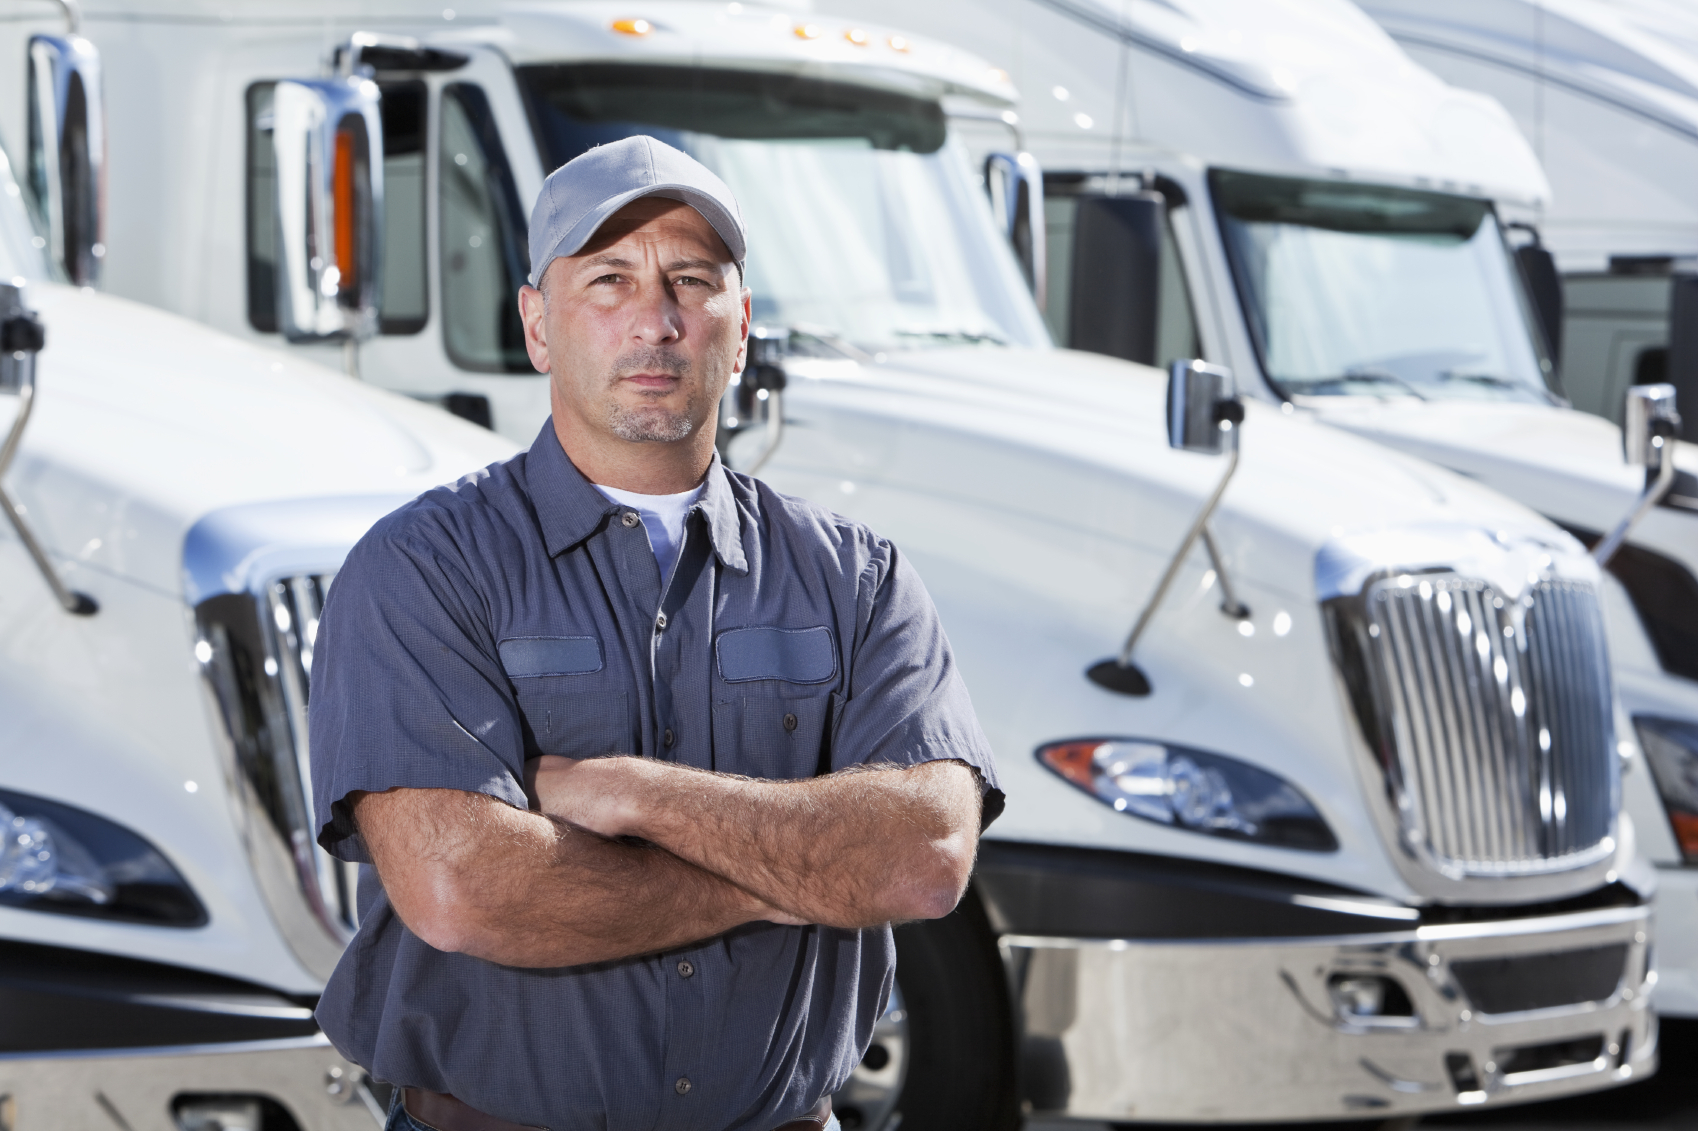 Finding Drivers, Keeping Drivers – The Trucking Industry's Ongoing Dilemma